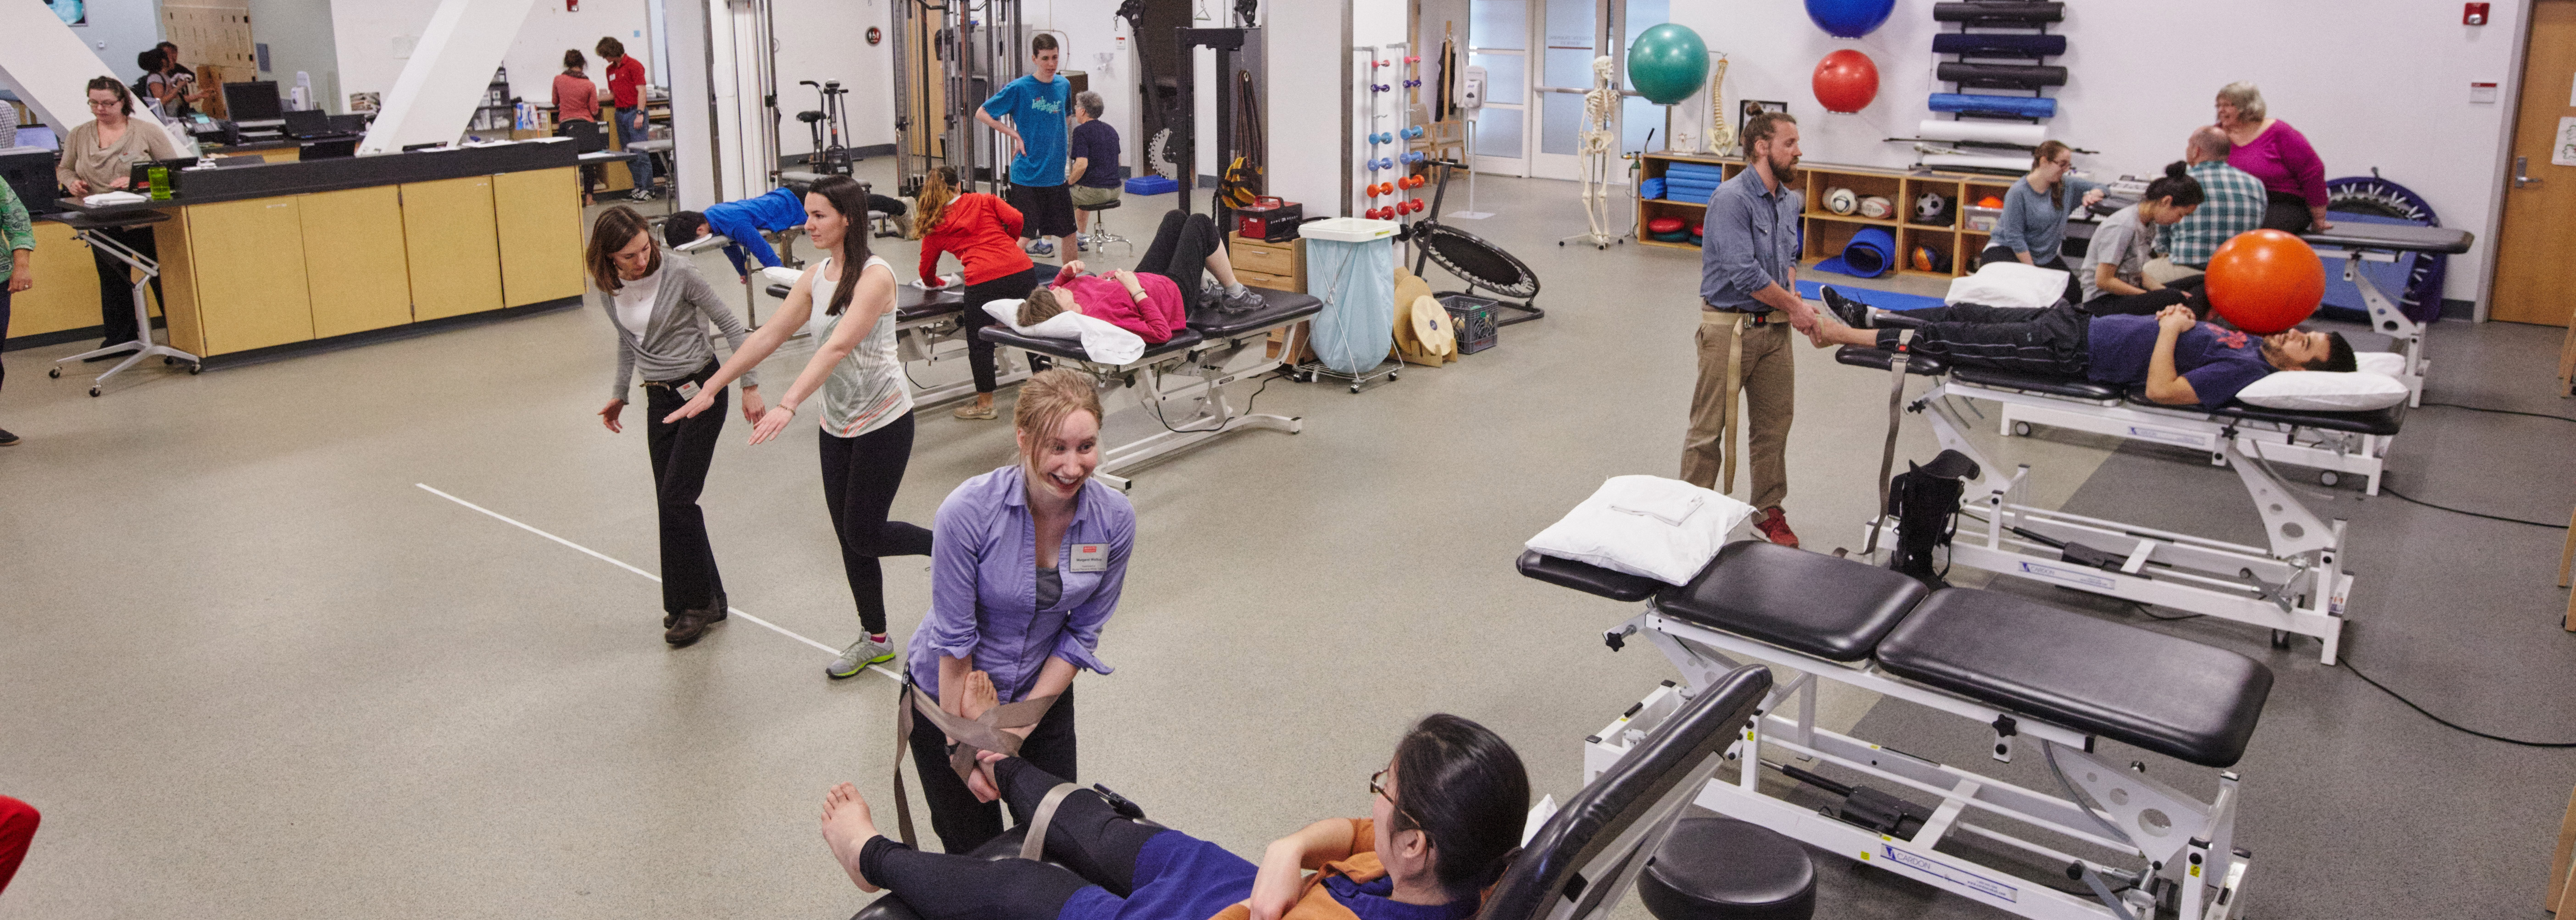 About physical therapy - About Buptc